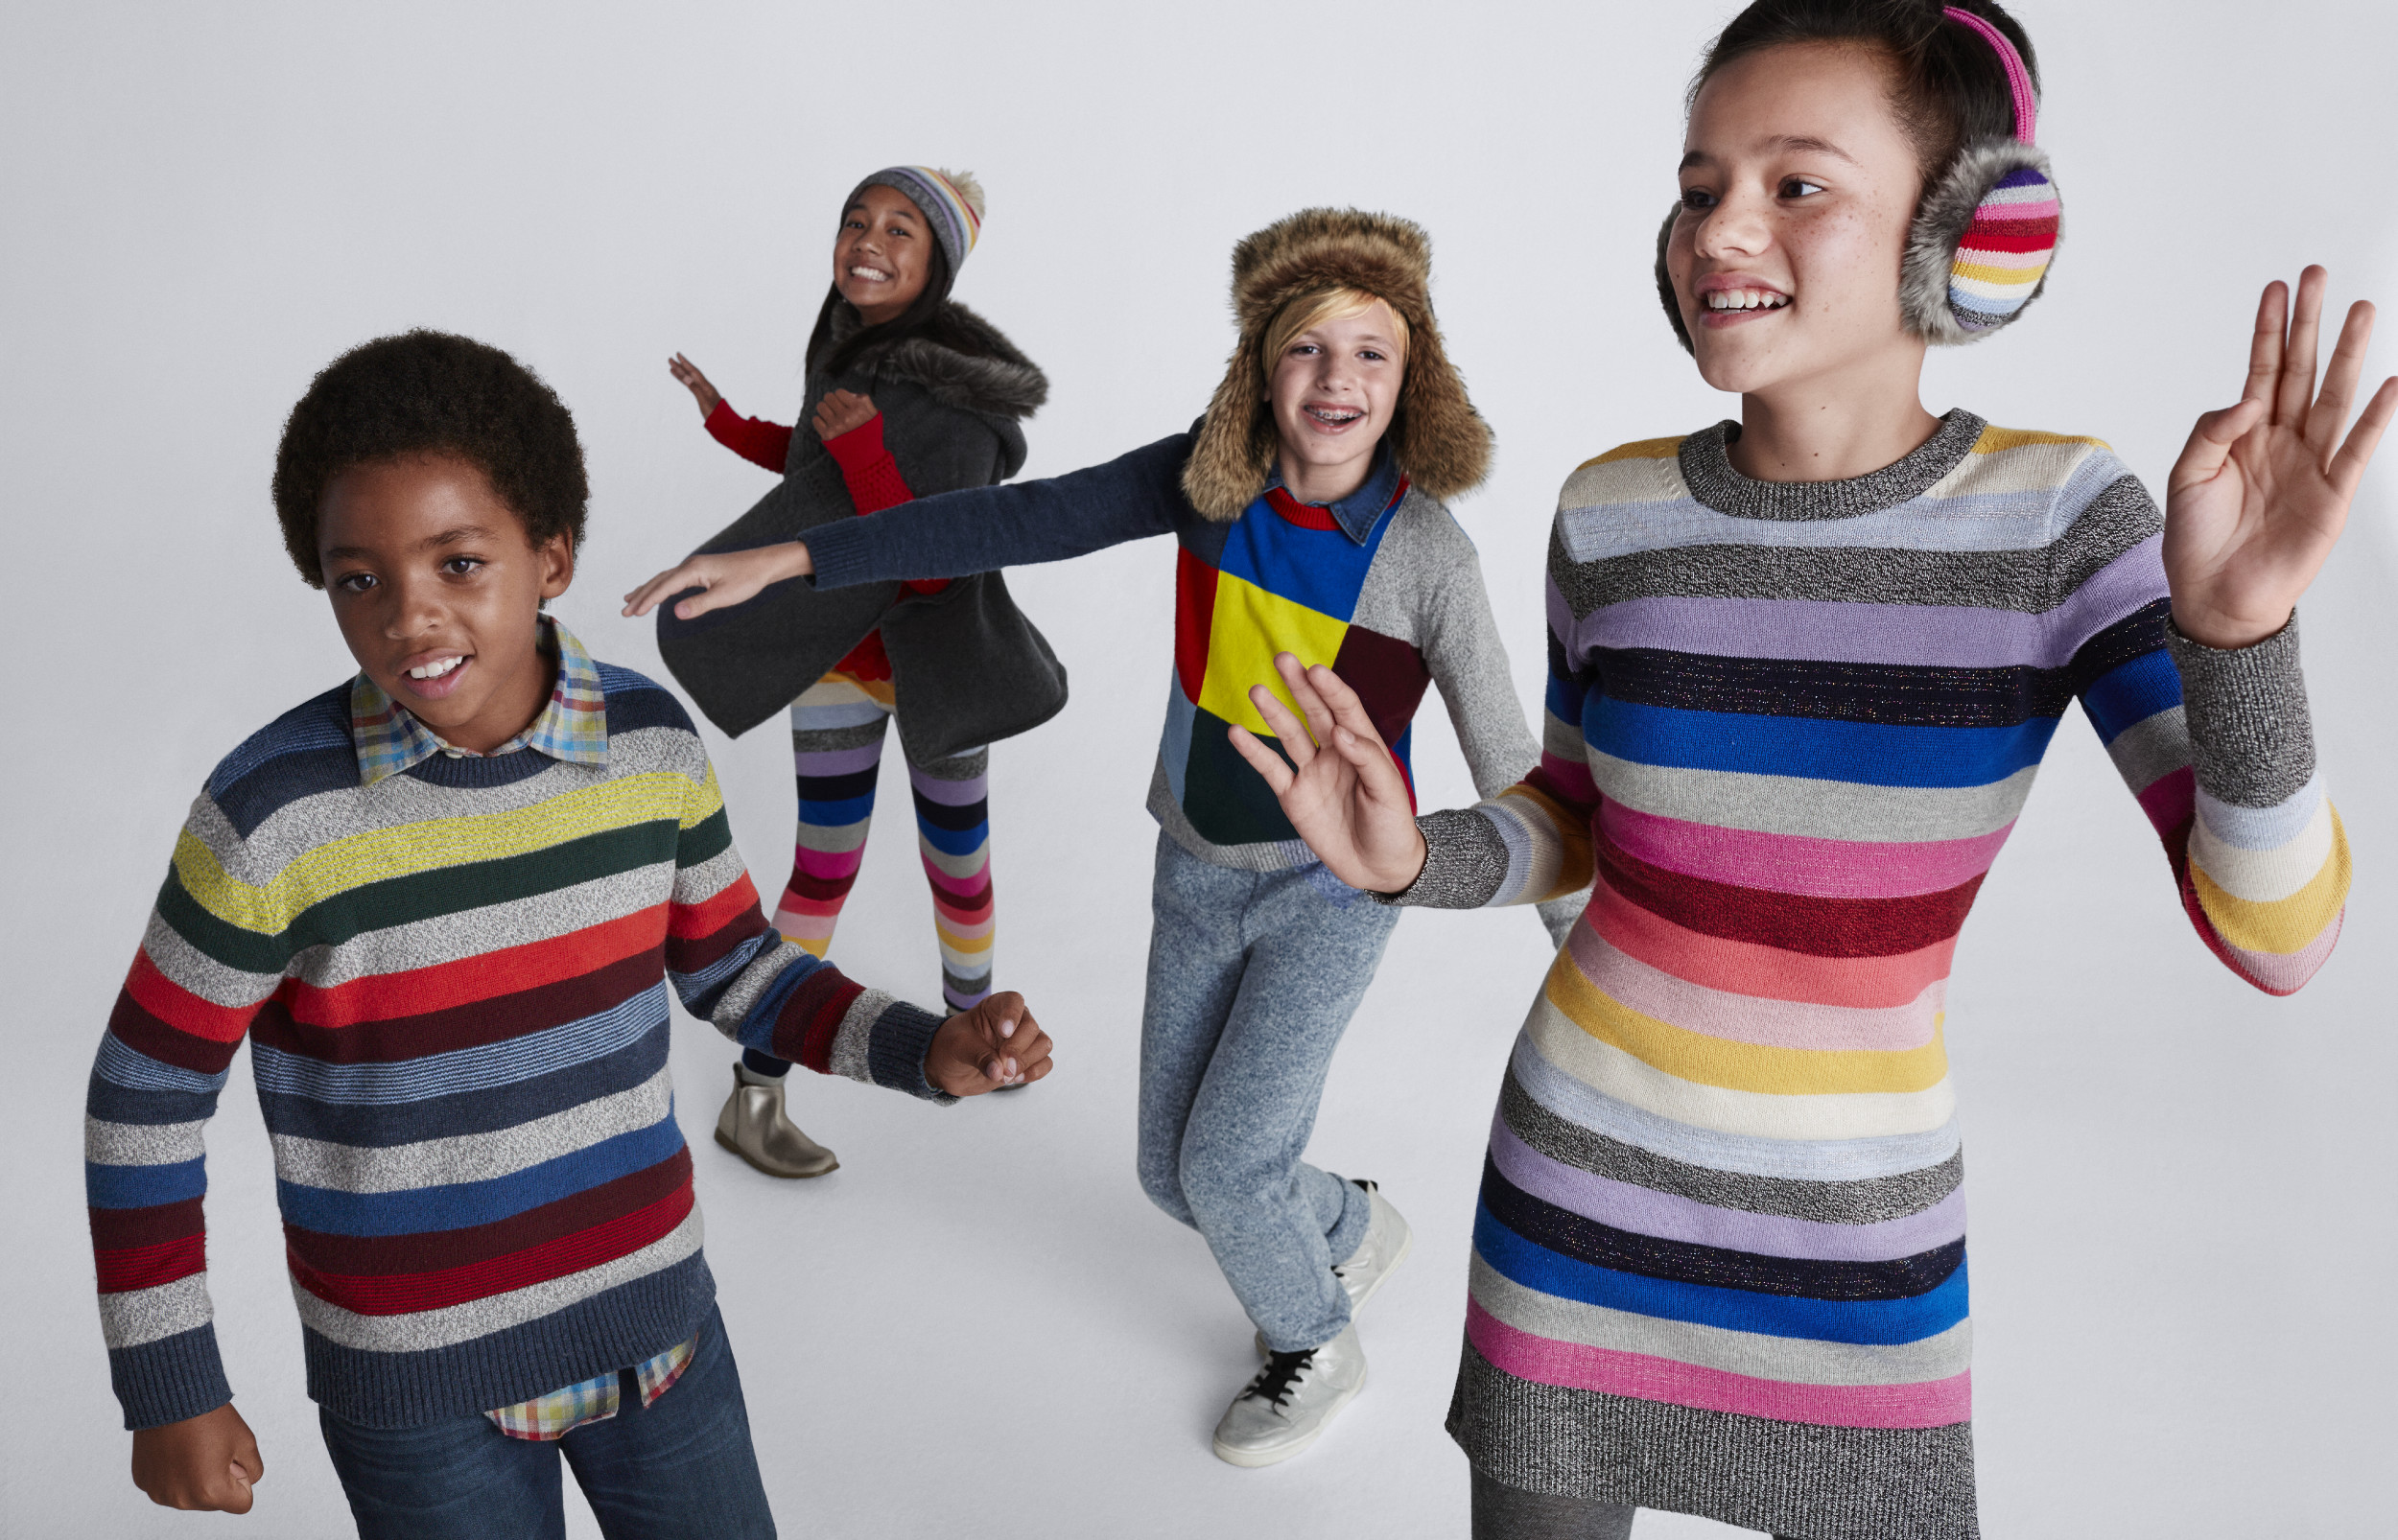 2018 model search 2018 top model searches enter Baby gap kids photo contest